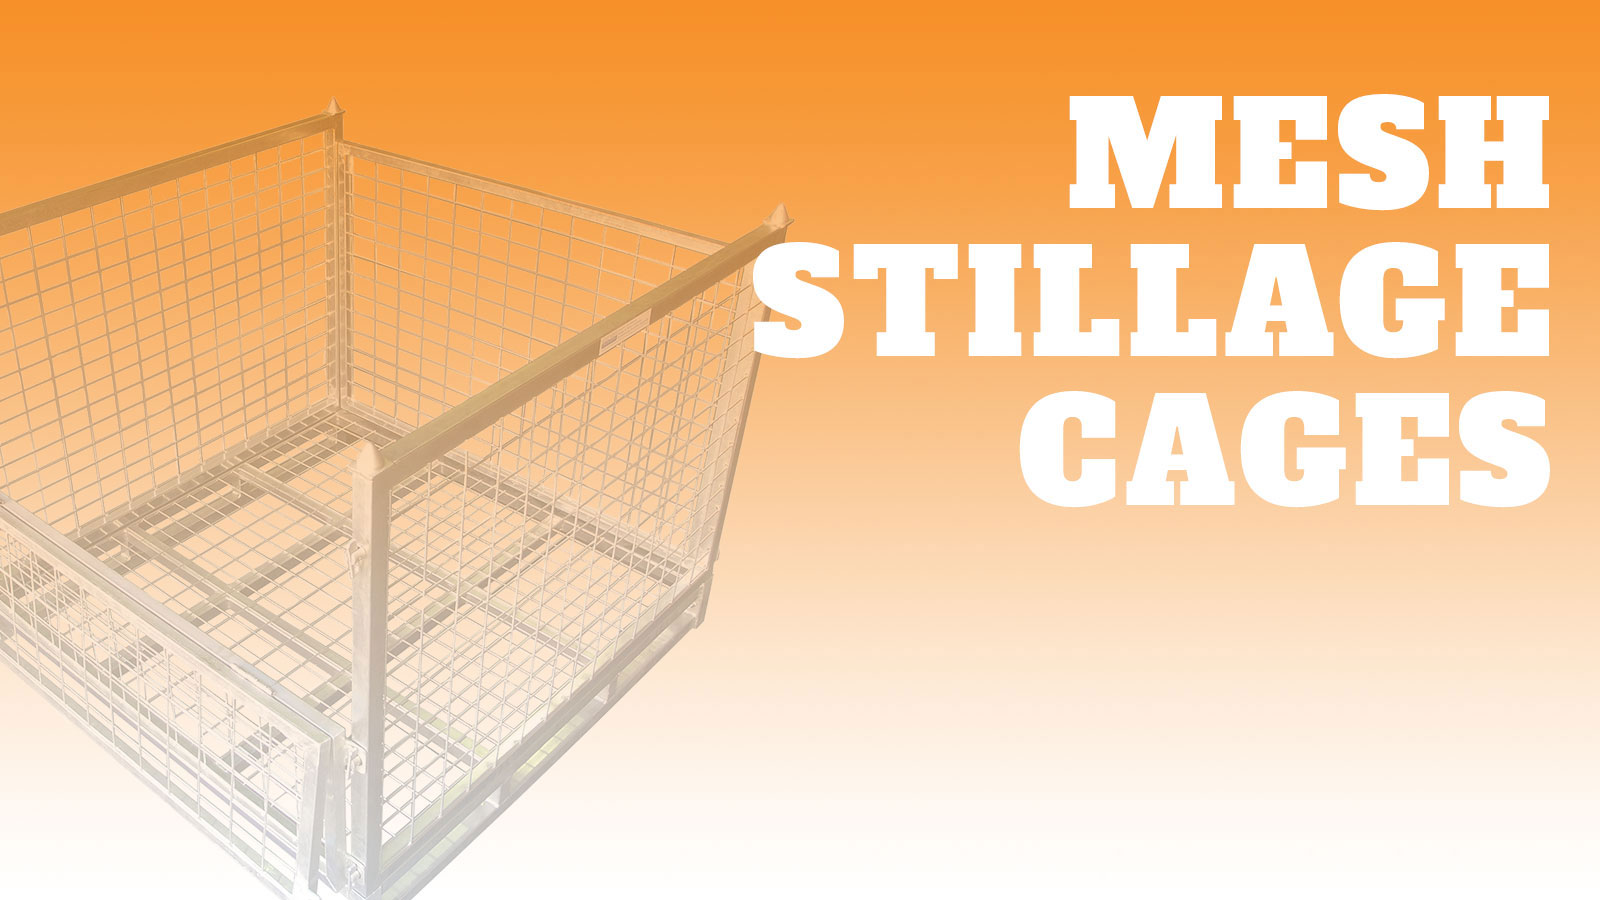 Industrial-Mesh-Stillage-Cages